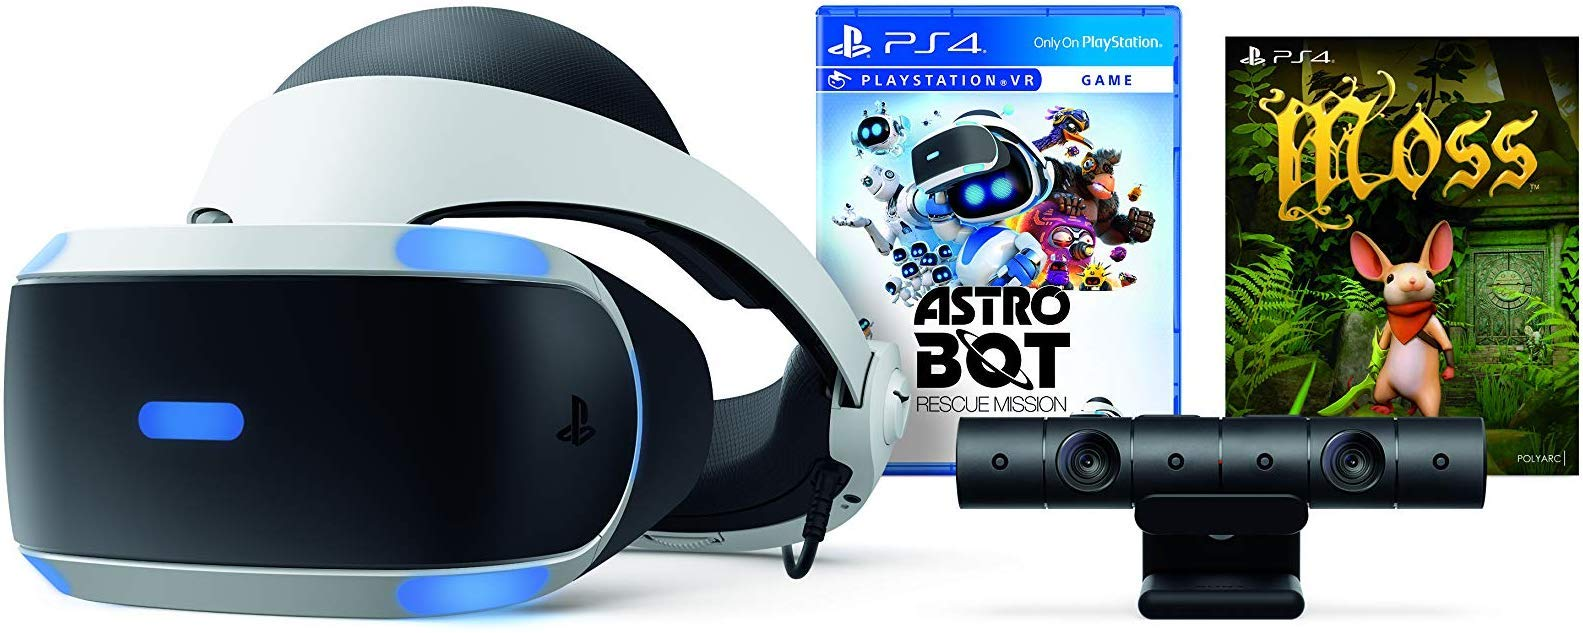 PlayStation VR - ASTRO BOT Rescue Mission + Moss Super Bundle: PlayStation VR headset, PlayStation Camera, Demo Disc 2.0, ASTRO BOT Rescue Mission + Moss by Sony